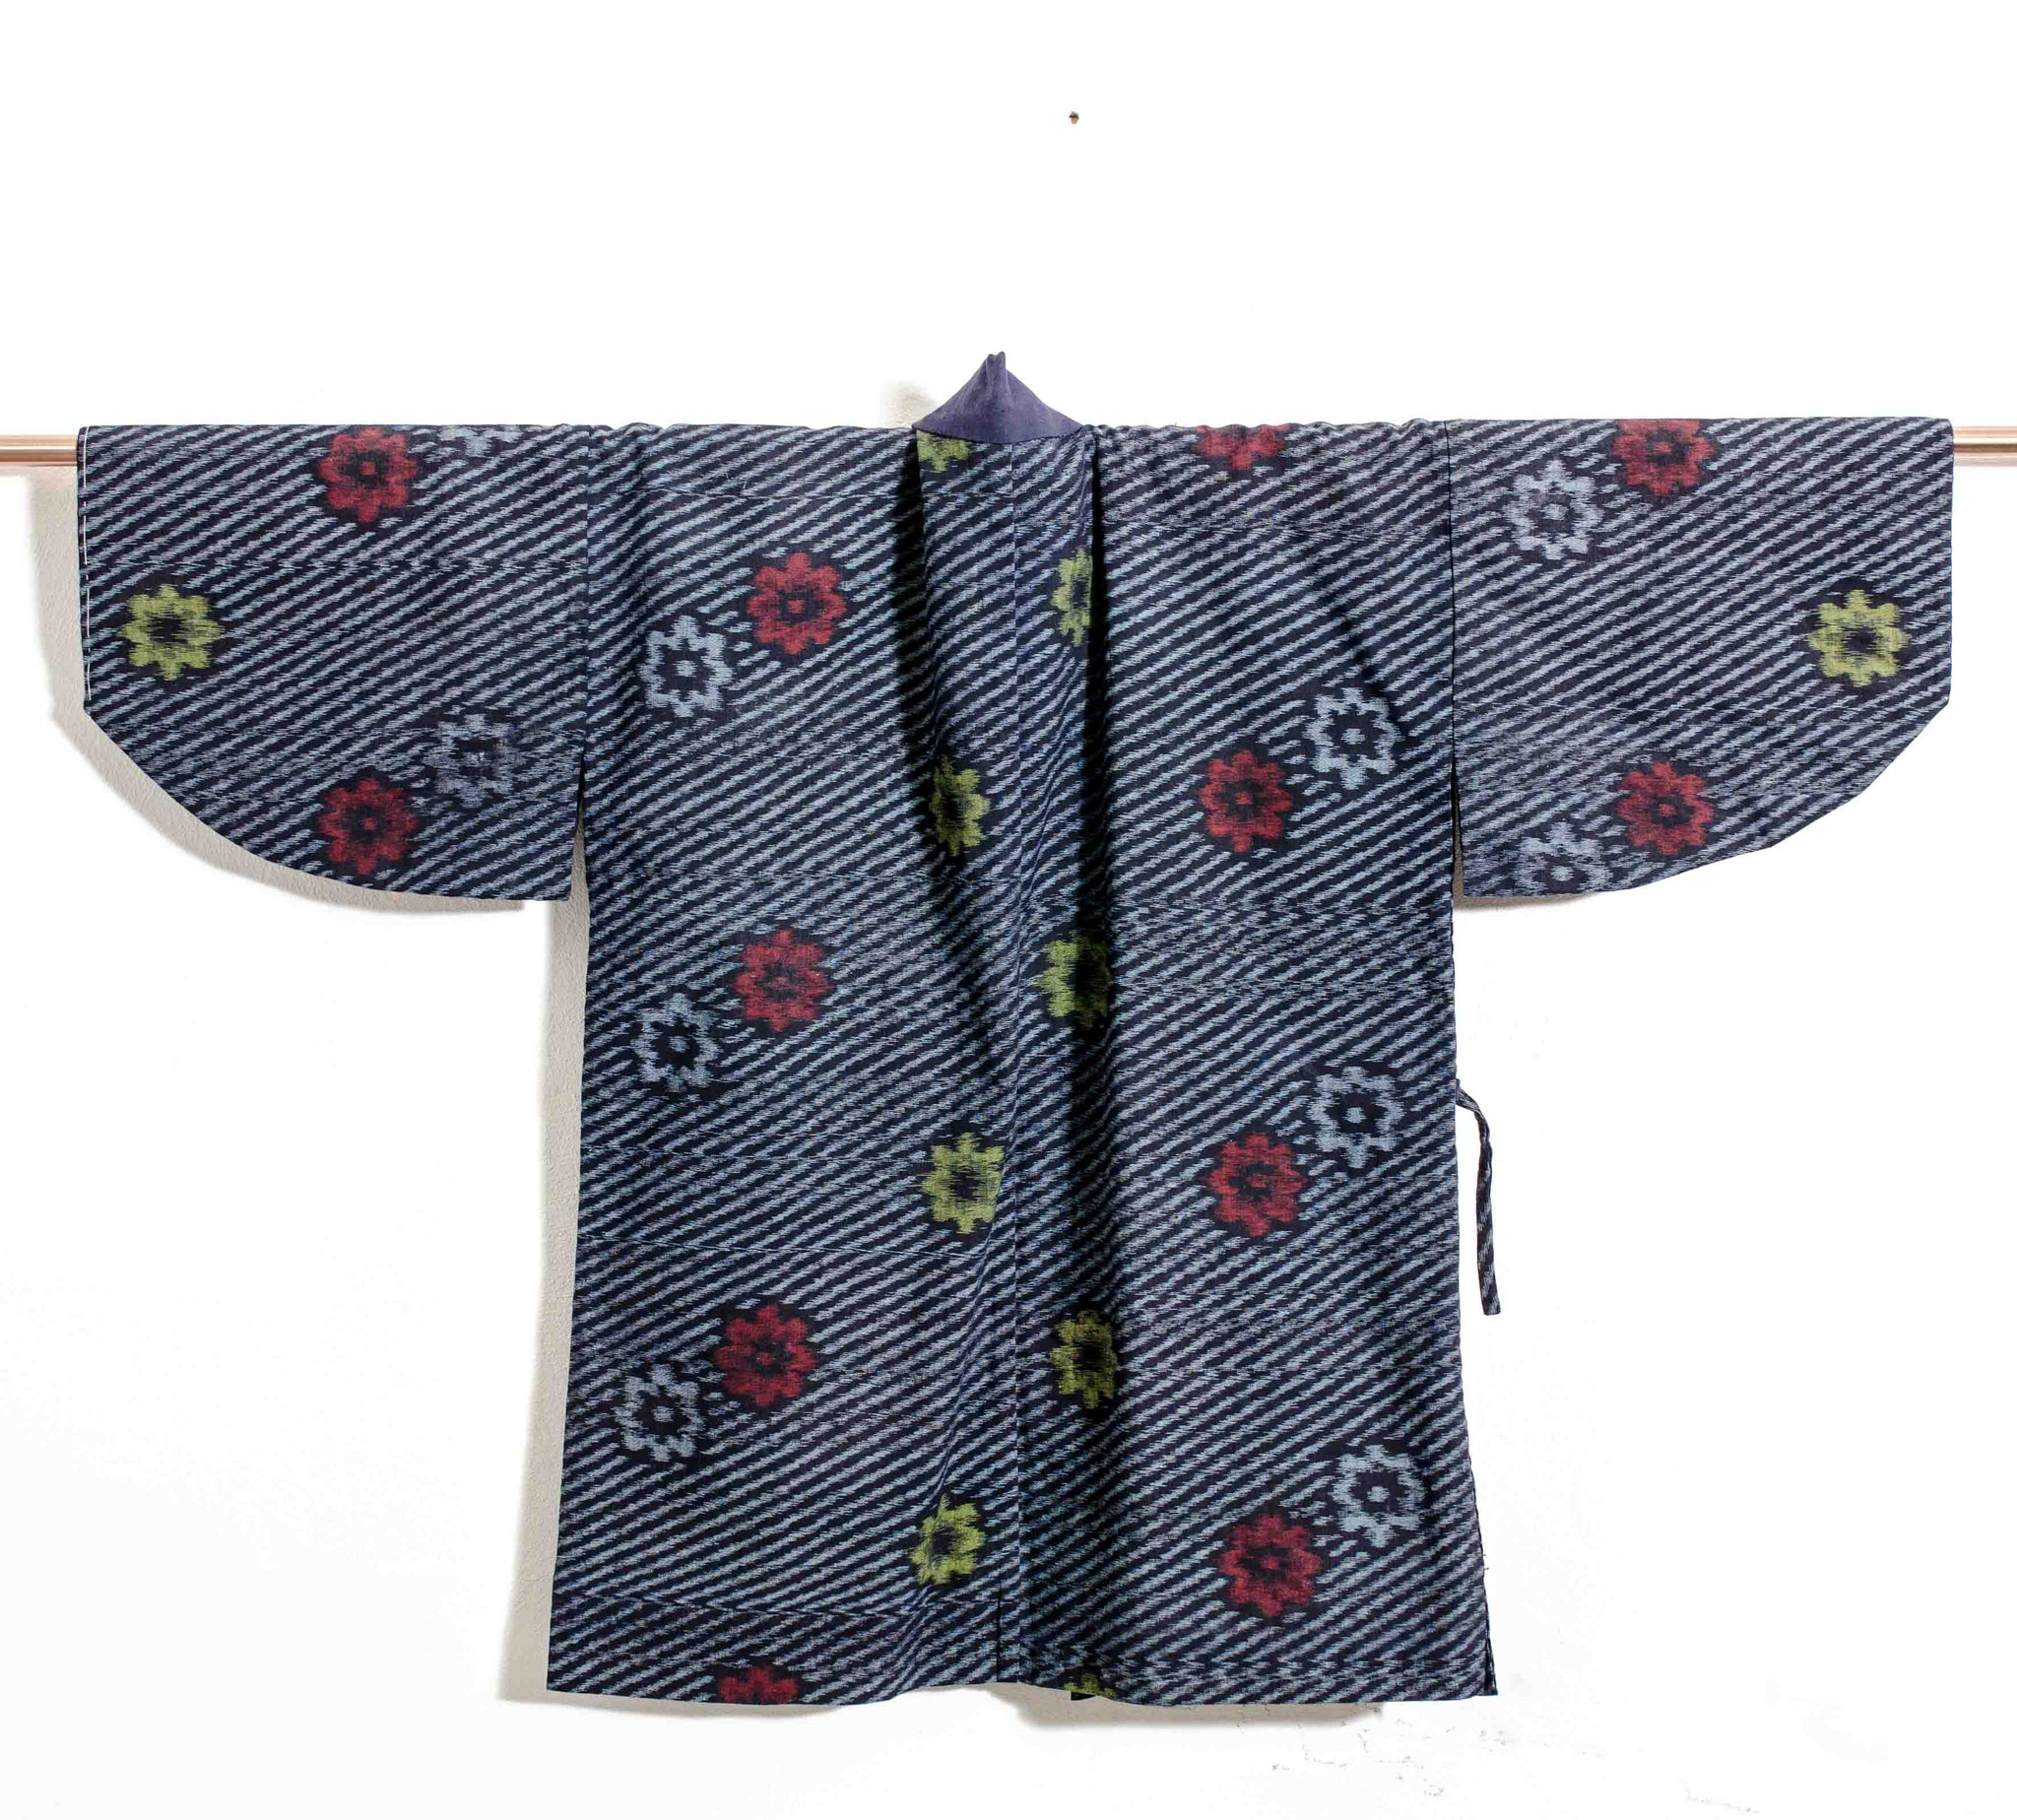 Covetable Boro Aizome Indigo Haori Jacket